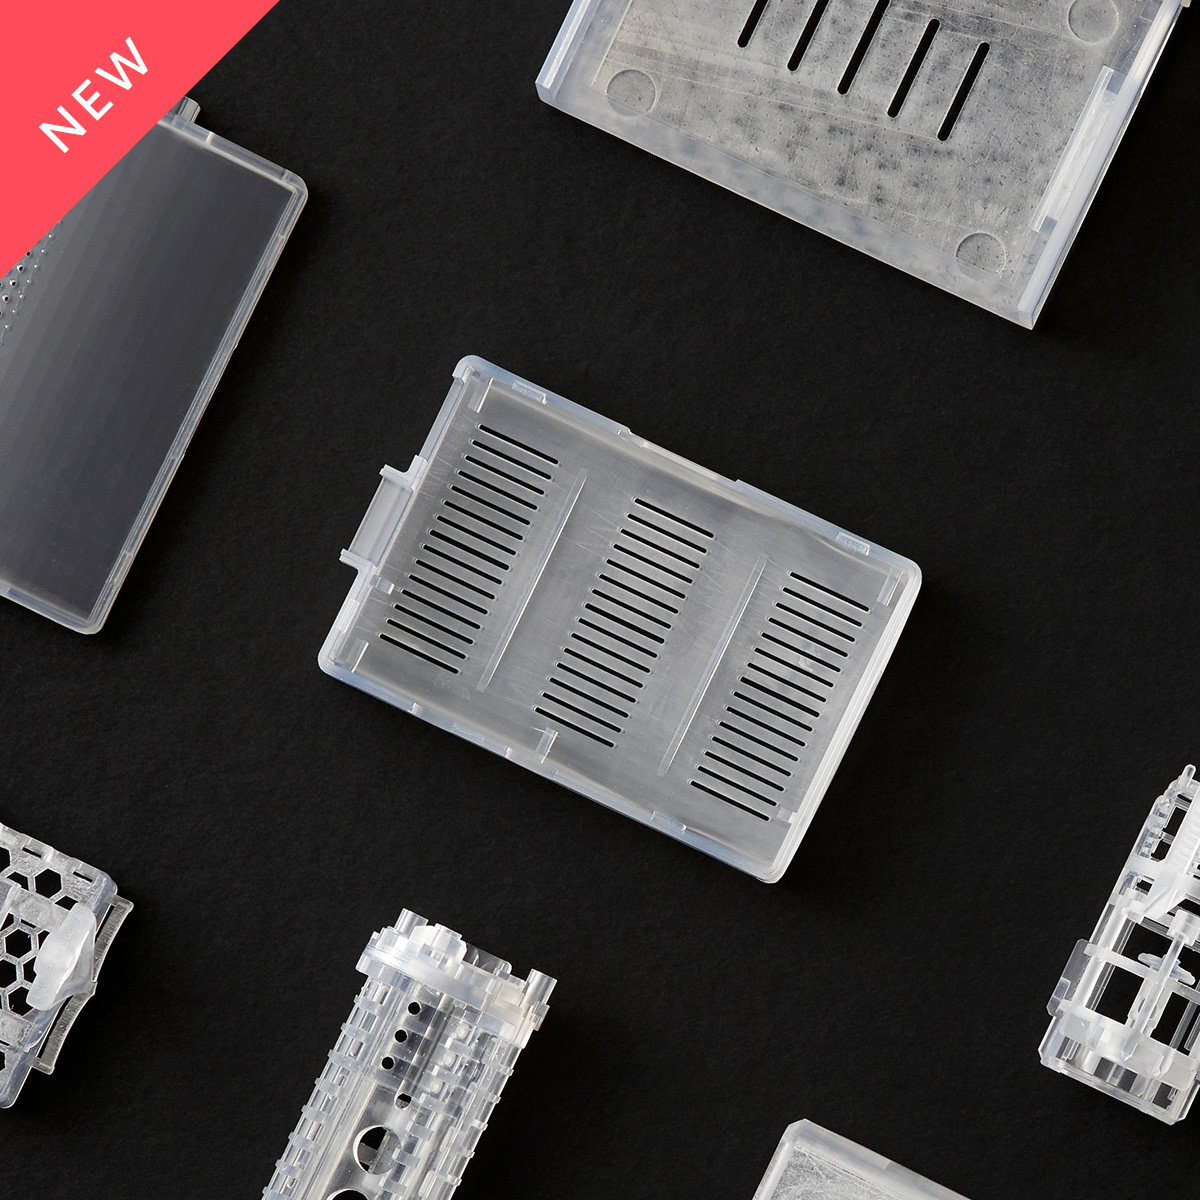 Semi-transparent electronics casing 3D printed in Accura 60